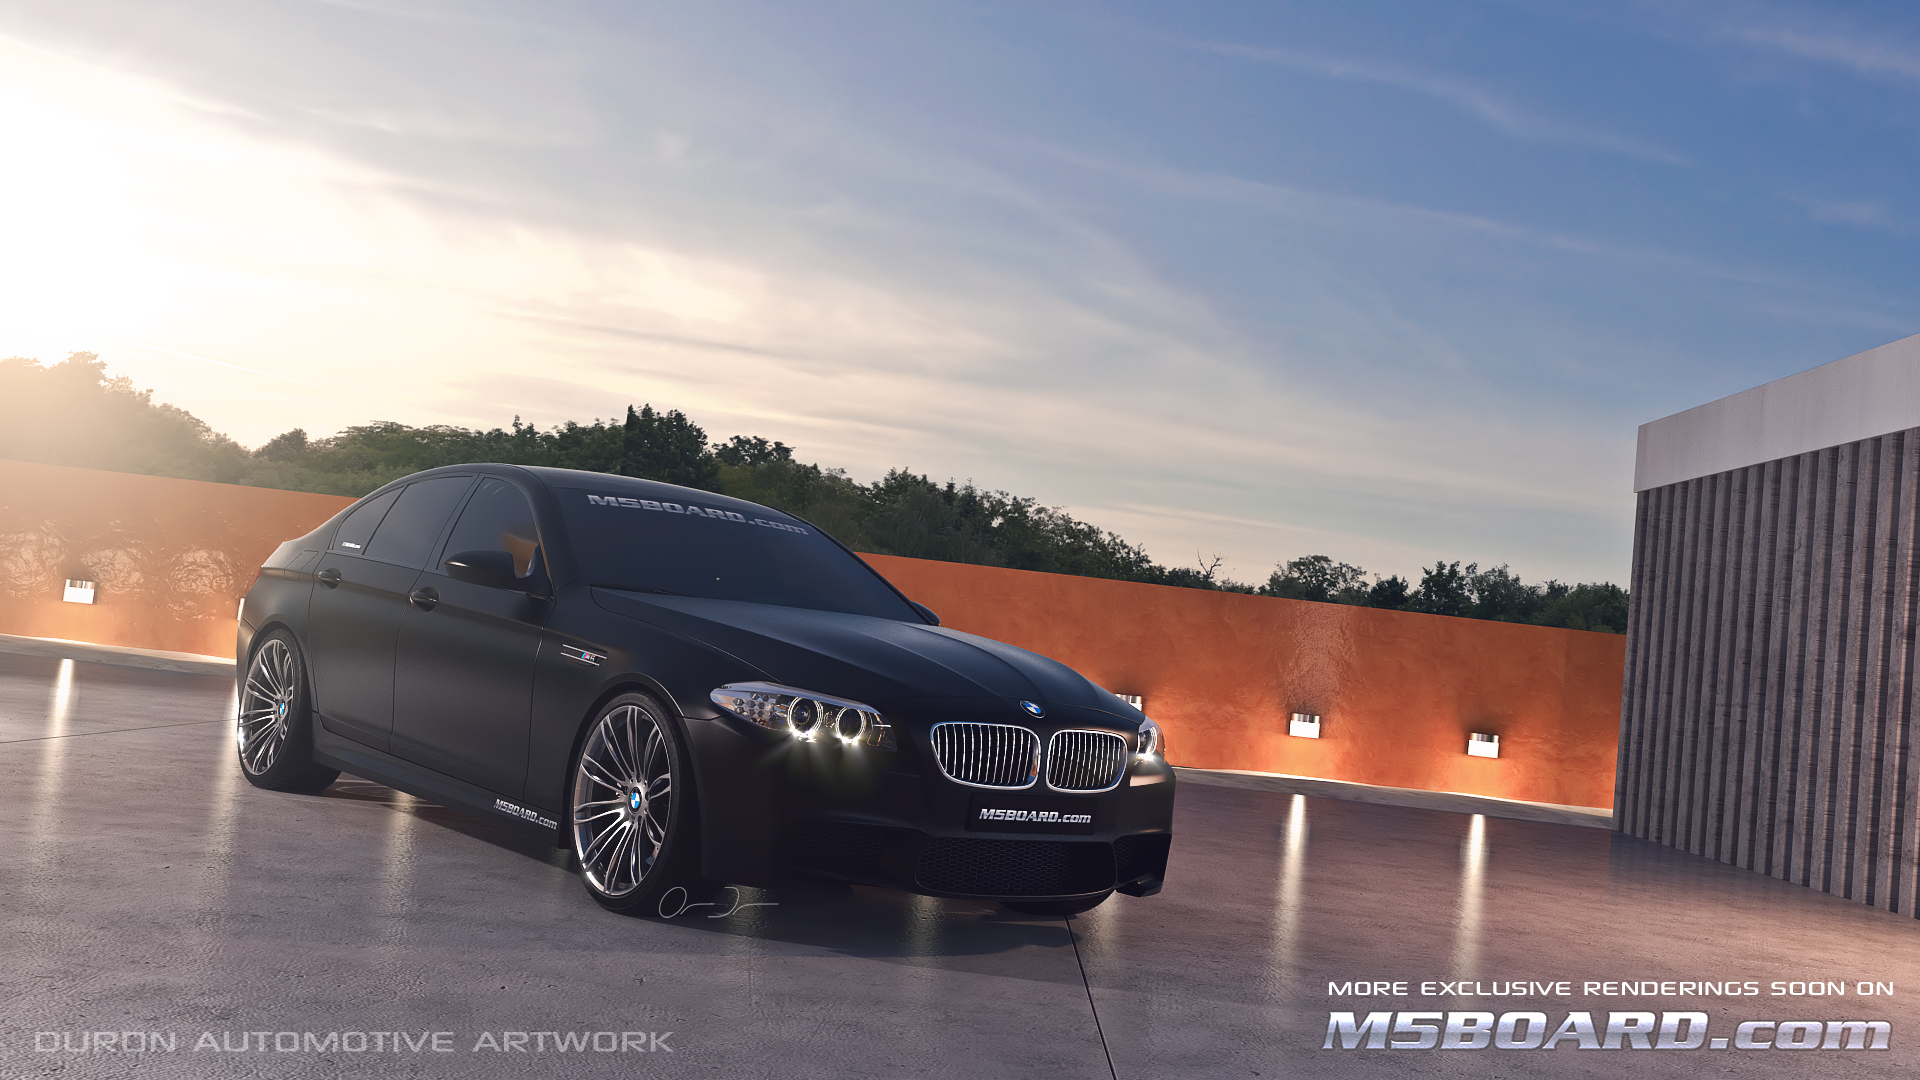 Picture: (3D Studiocomputerrendering): Frozen Gray / Grey BMW M5 F10 Individual with black wheels in front of four car garage (and updated front spoiler, reardiffuser and normal hood)-m5boardfrozenblacksapphireblackbmwm5f102011.jpg